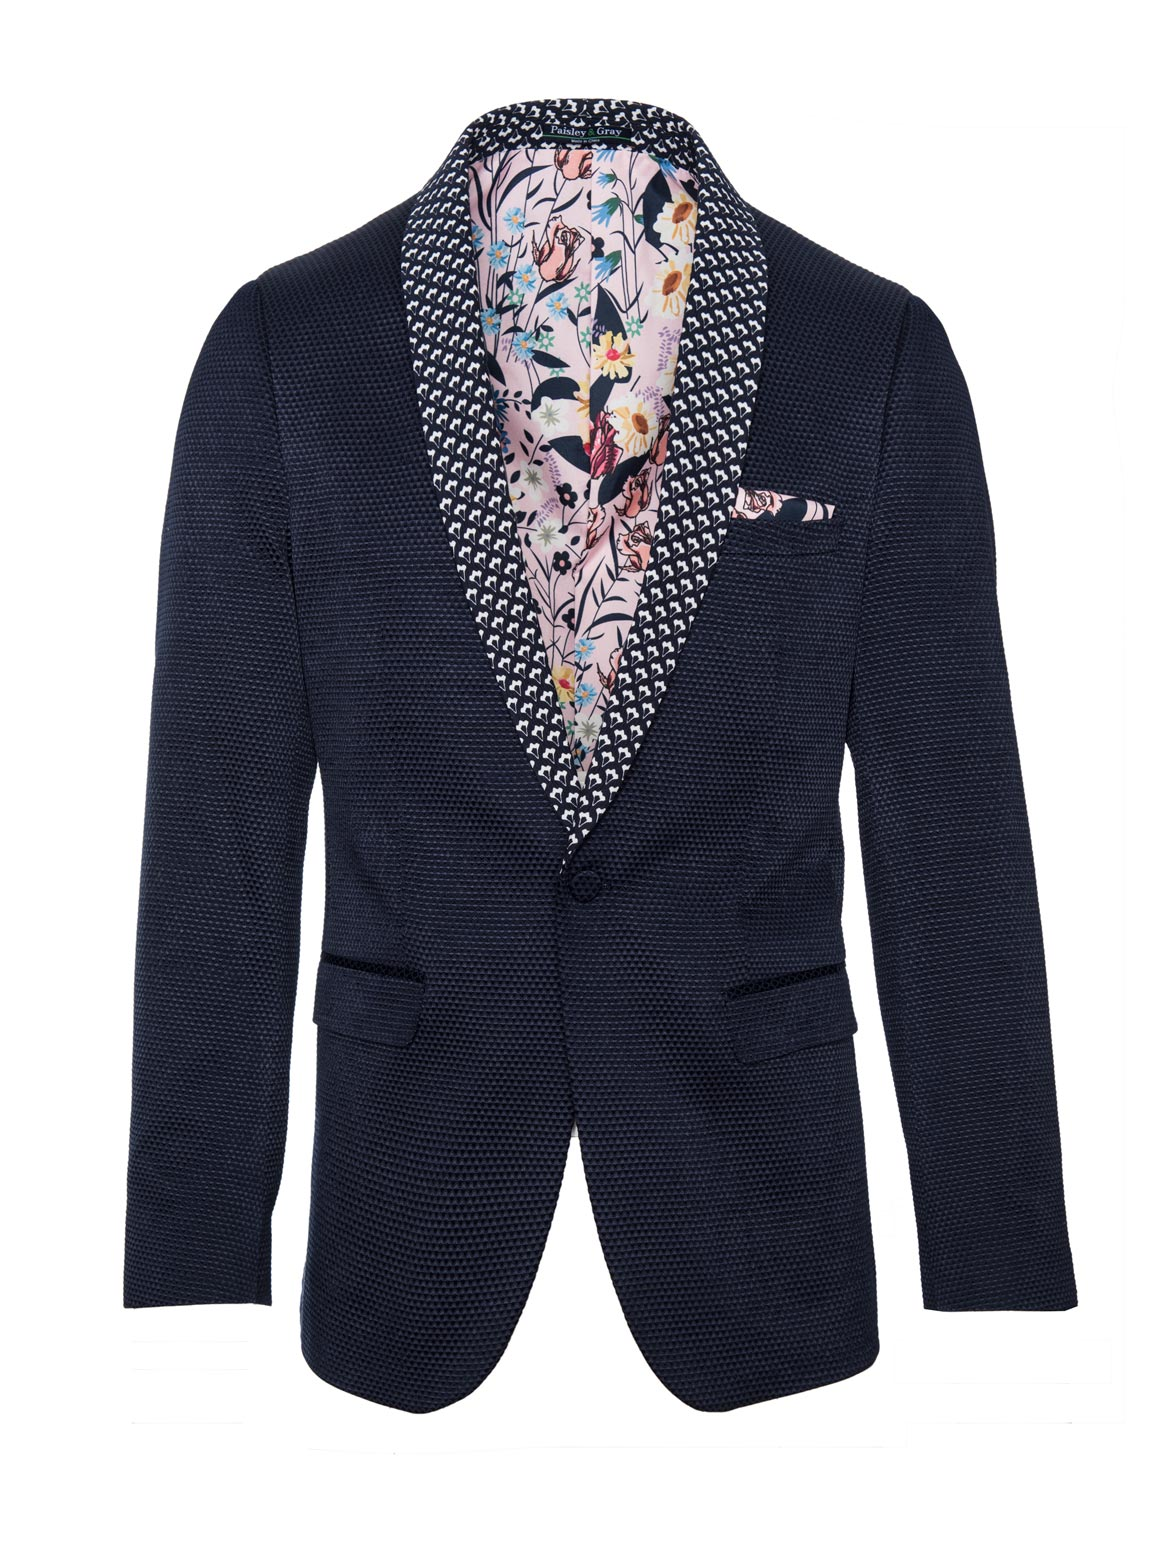 paisley & gray navy diamond skinny fit navy & white jacquard contrast shawl lapel tuxedo jacket 2105J pastel, illustrated floral lining and pocket square one button flap pockets